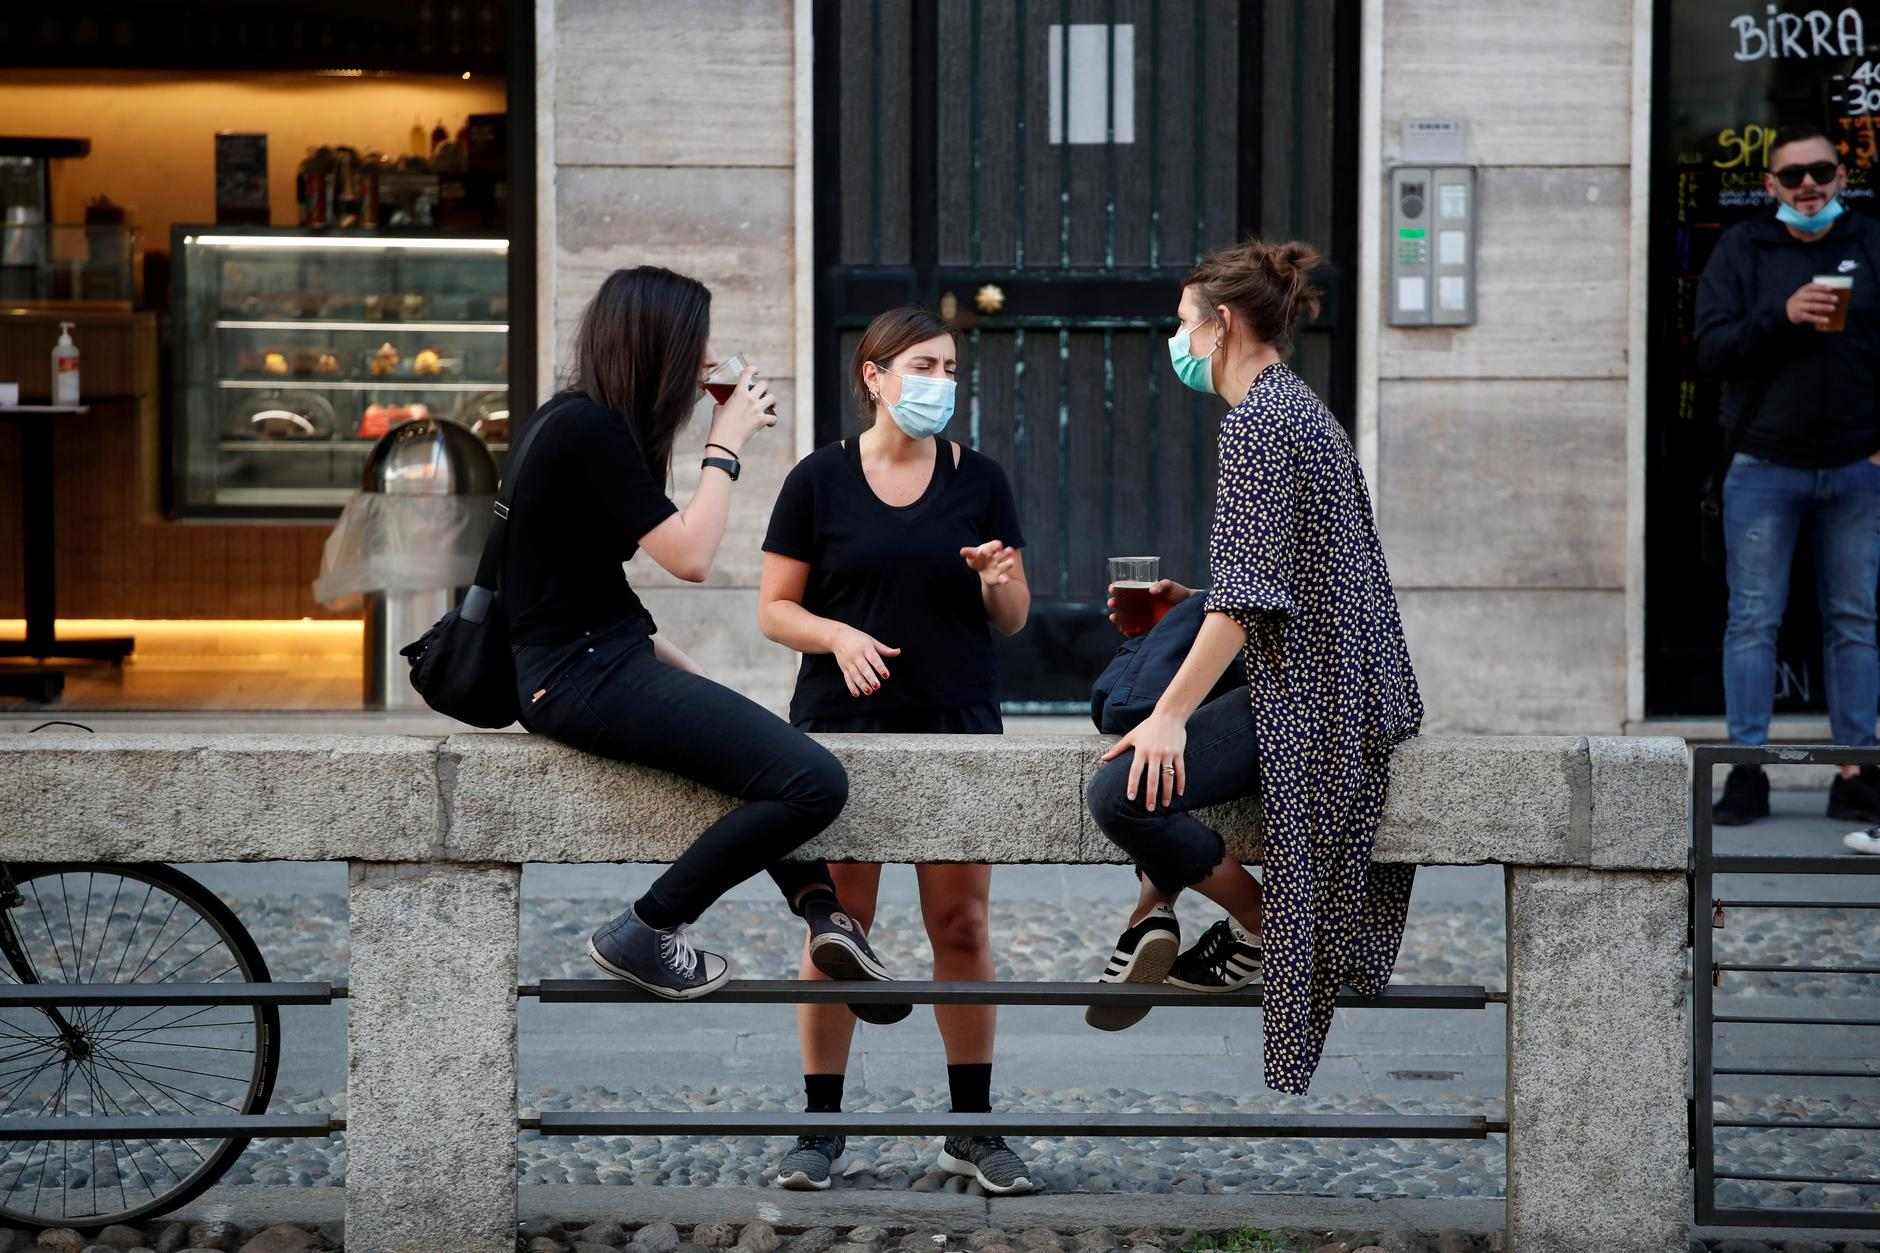 People enjoy a drink in the Navigli area, as Italy eases some of the lockdown measures put in place during the coronavirus disease (COVID-19) outbreak, in Milan, Italy May 18, 2020. REUTERS/Alessandro Garofalo